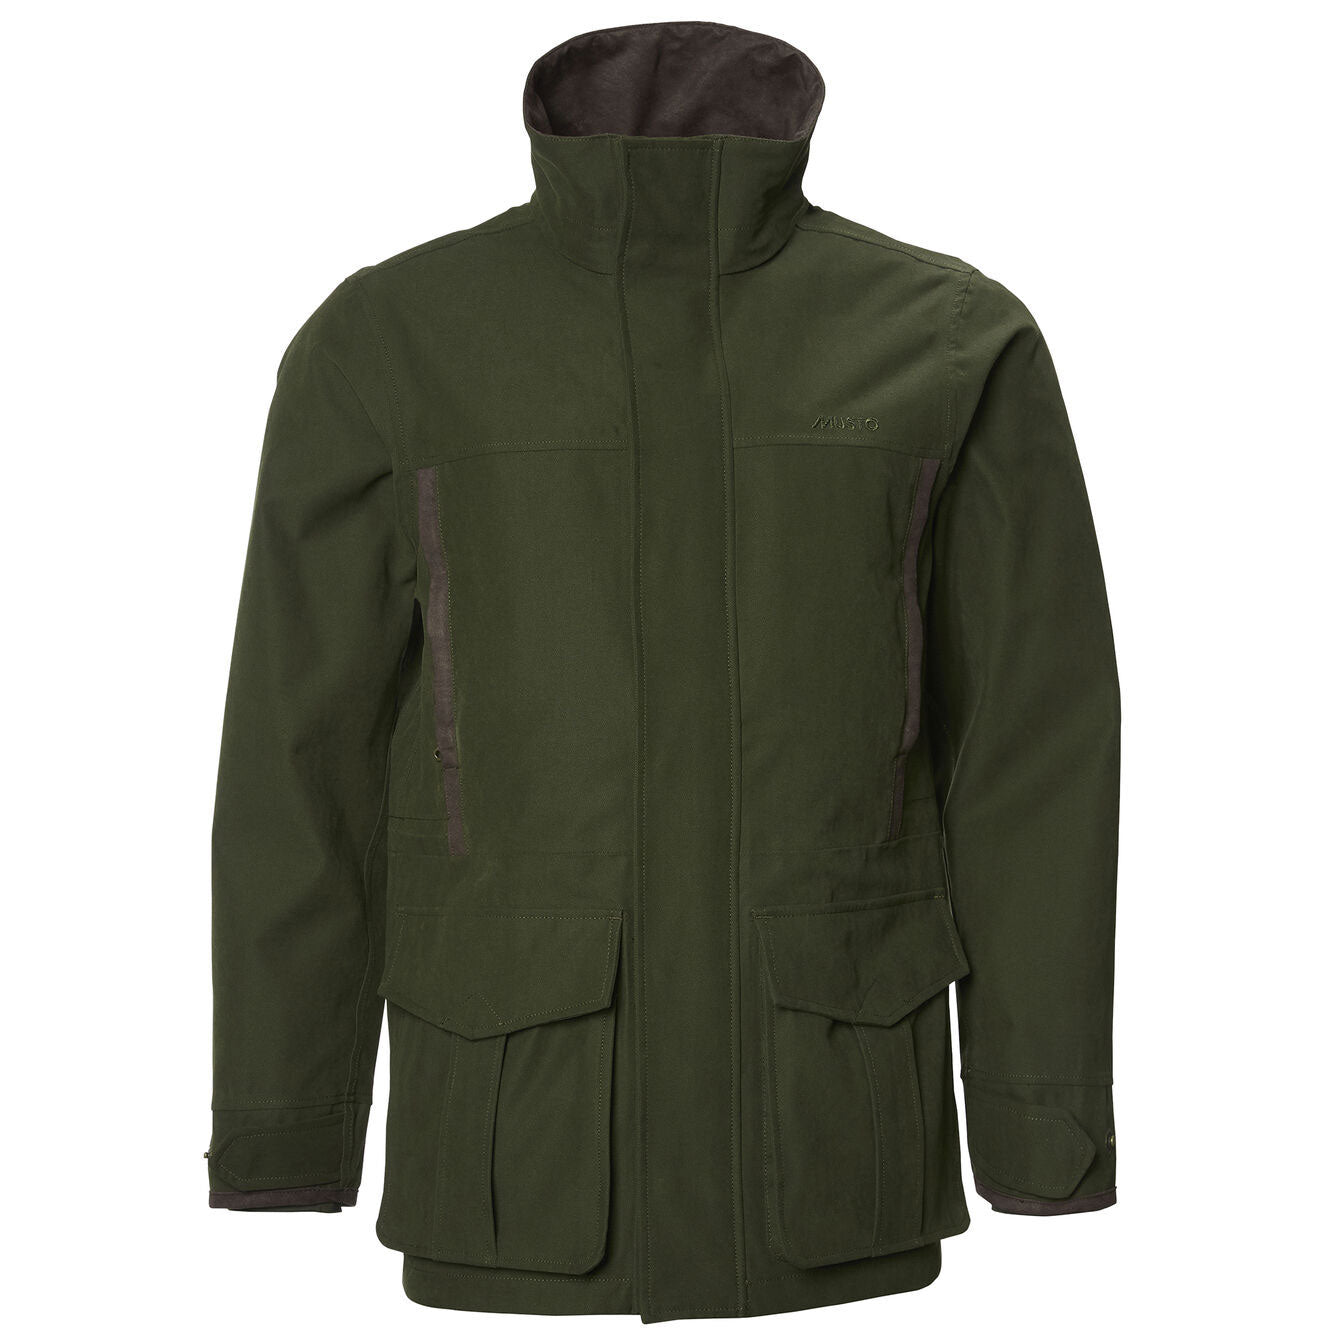 With neck fully closed Musto Keepers Westmoor BR1 Jacket